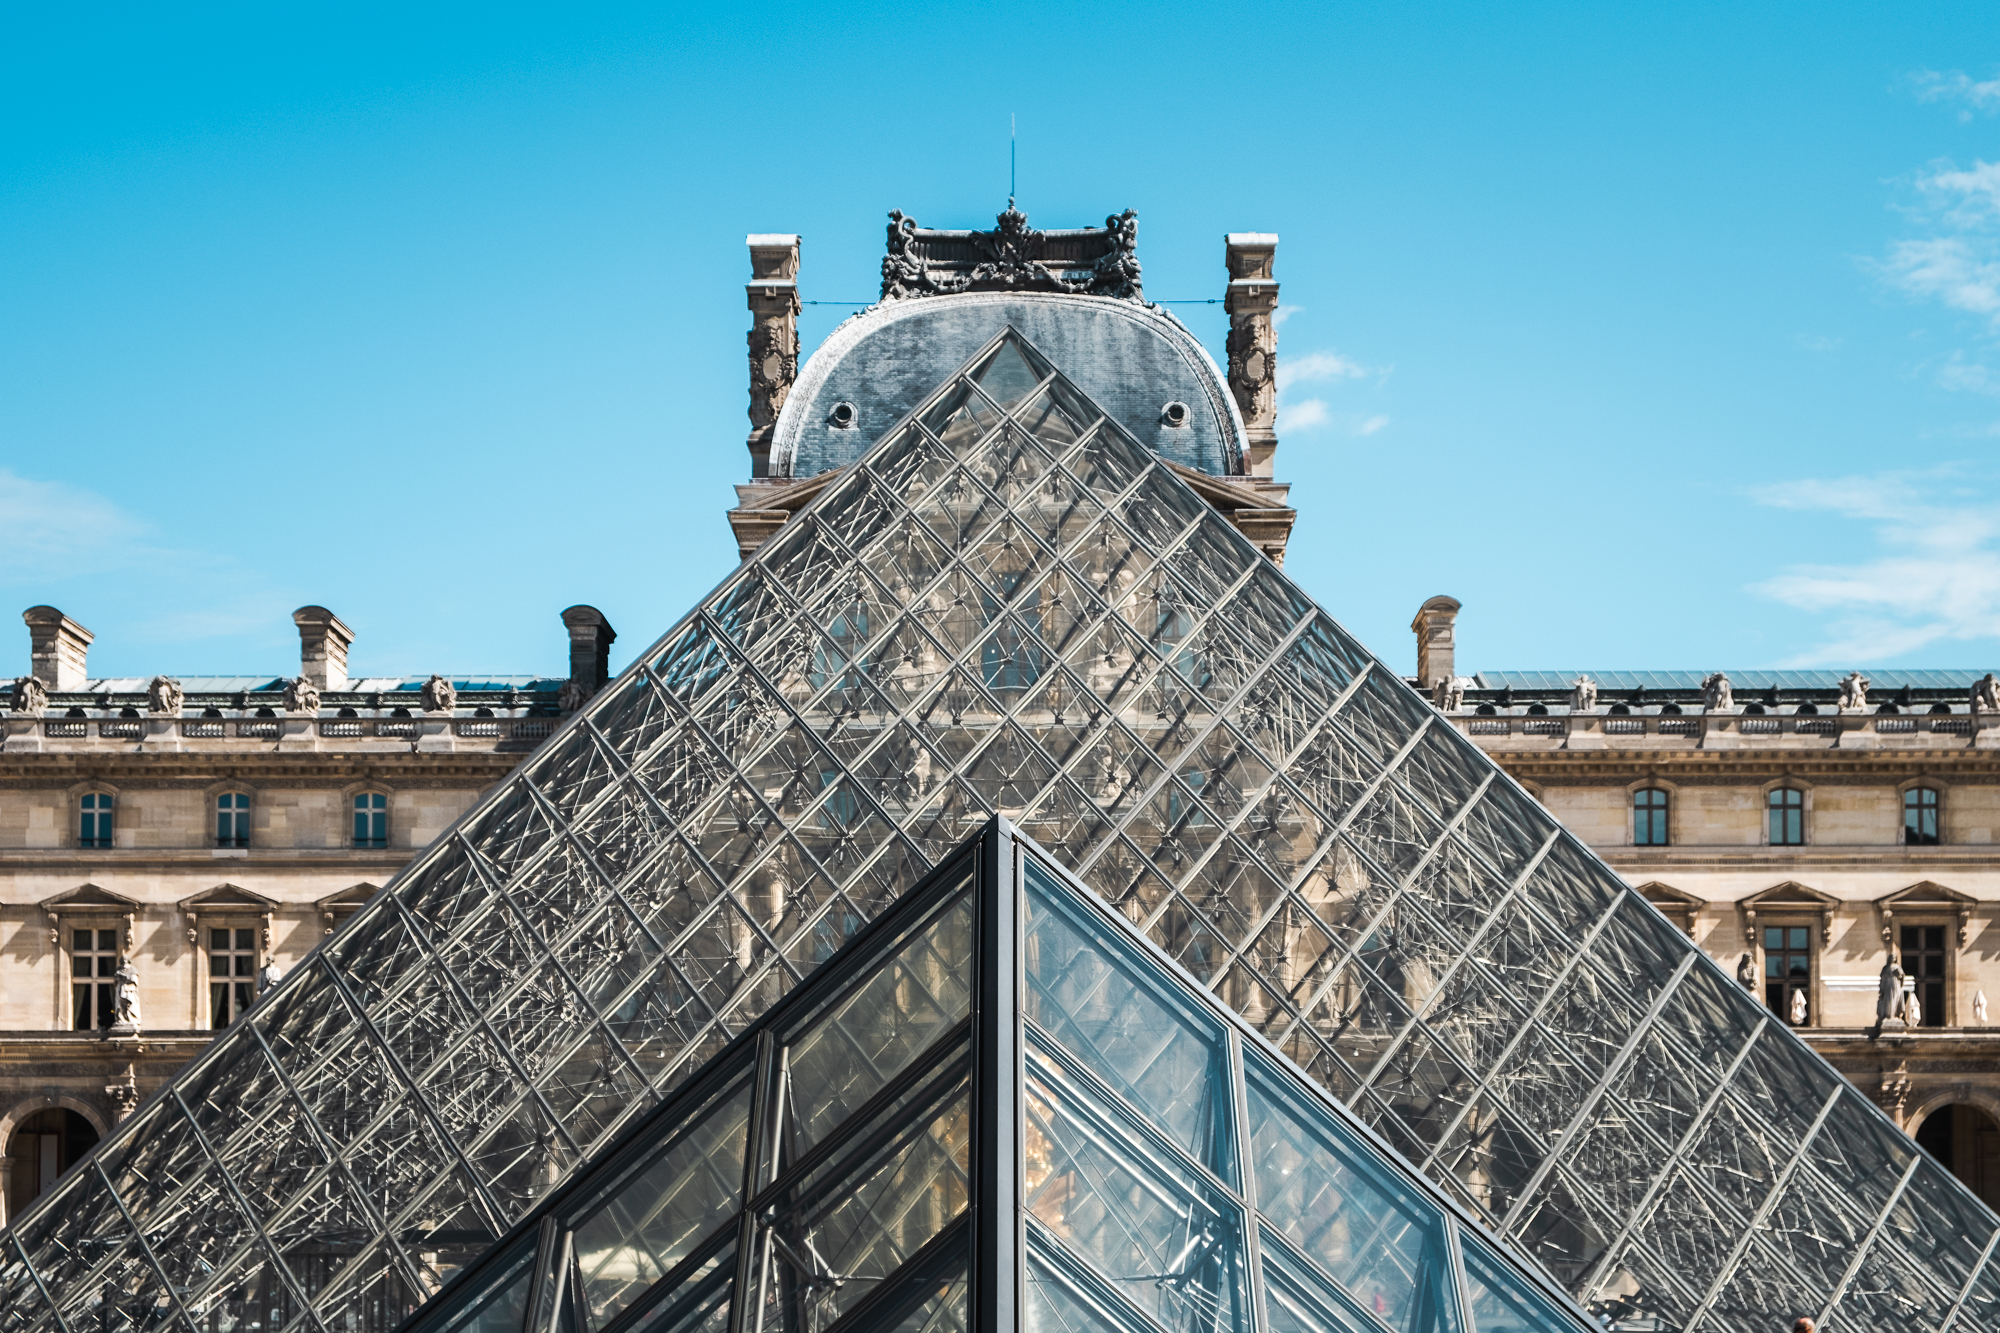 The Louvre Pyramid | Fujifilm XT2 | XF18-55mm | 34mm | 1/680 second | f/5.6 | ISO200